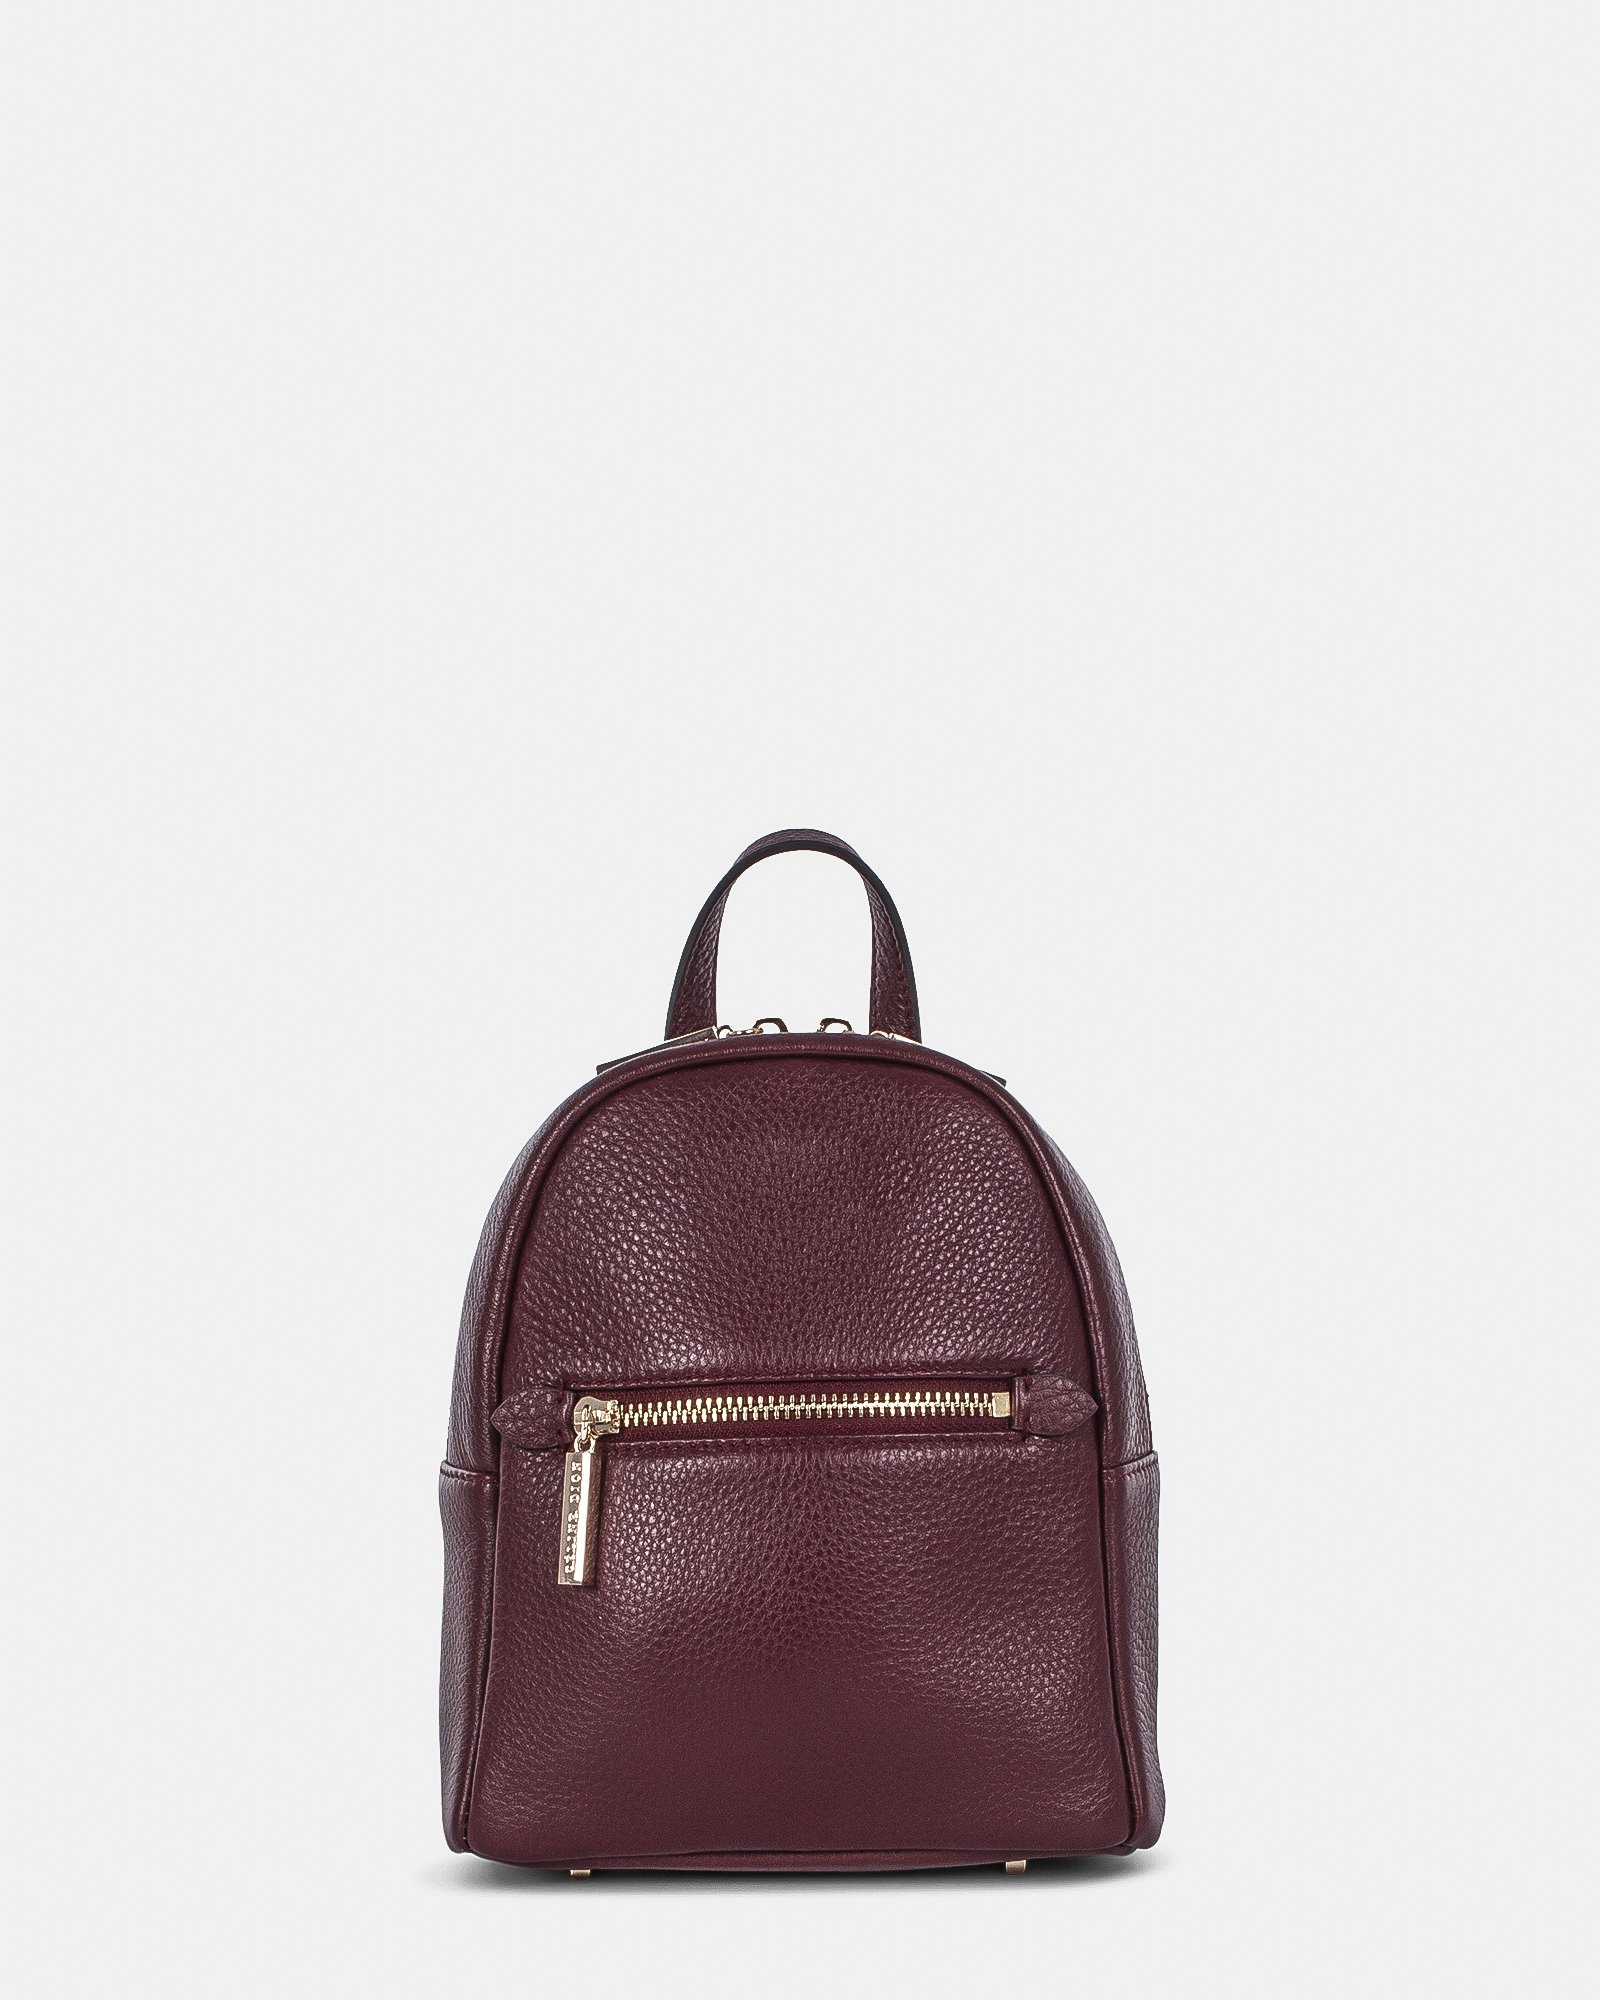 ADAGIO MINI BACKPACK LEATHER - Céline Dion - Zoom